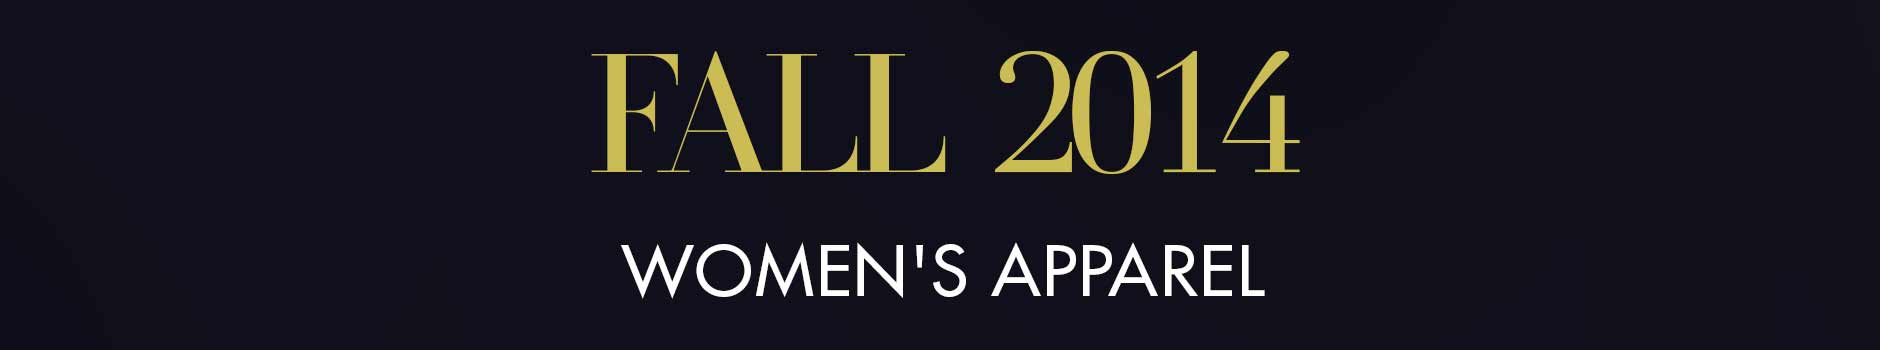 Fall 2014 Womens Apparel